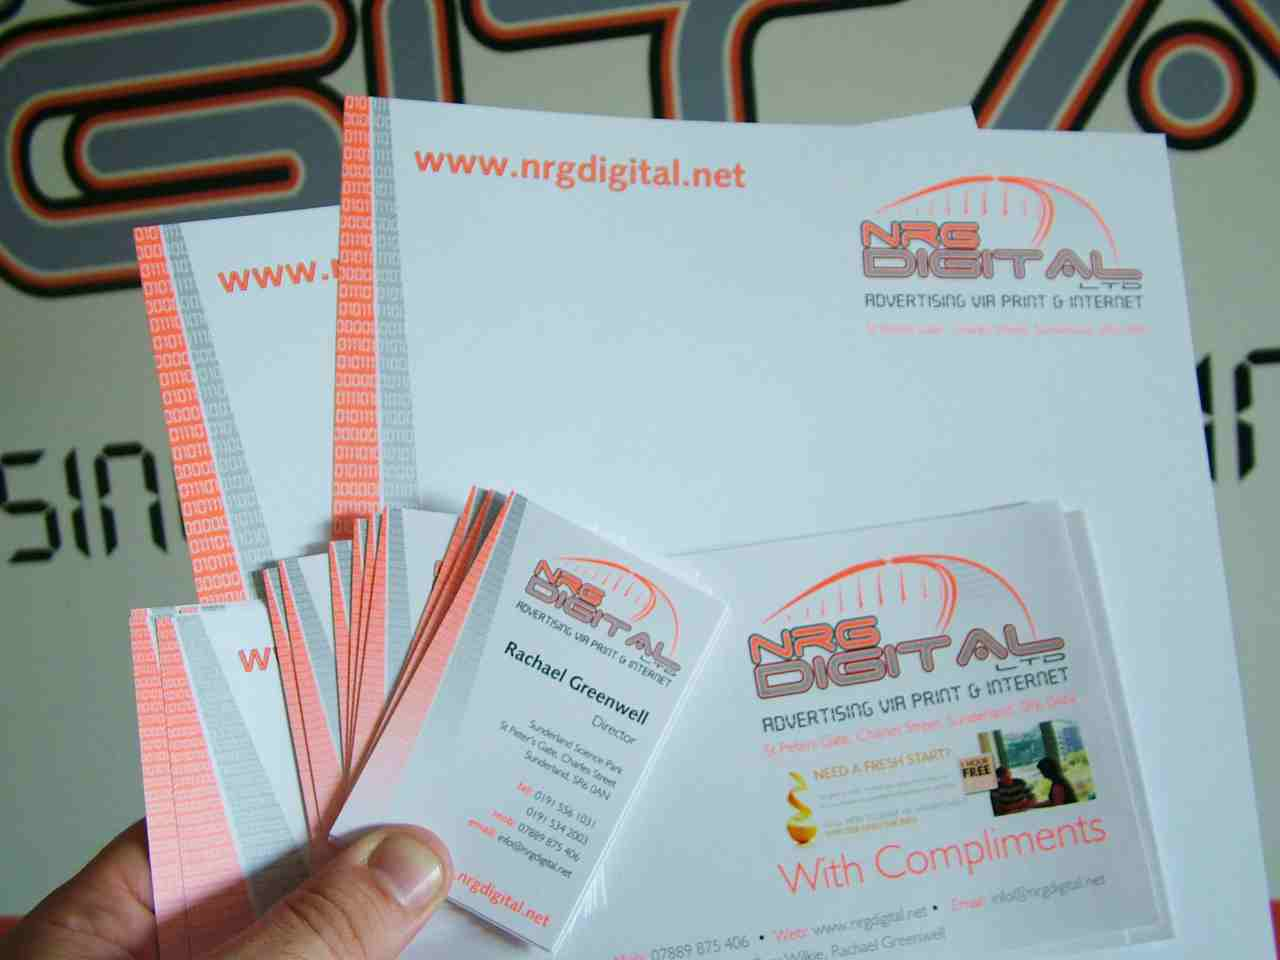 NRG Digital stationery